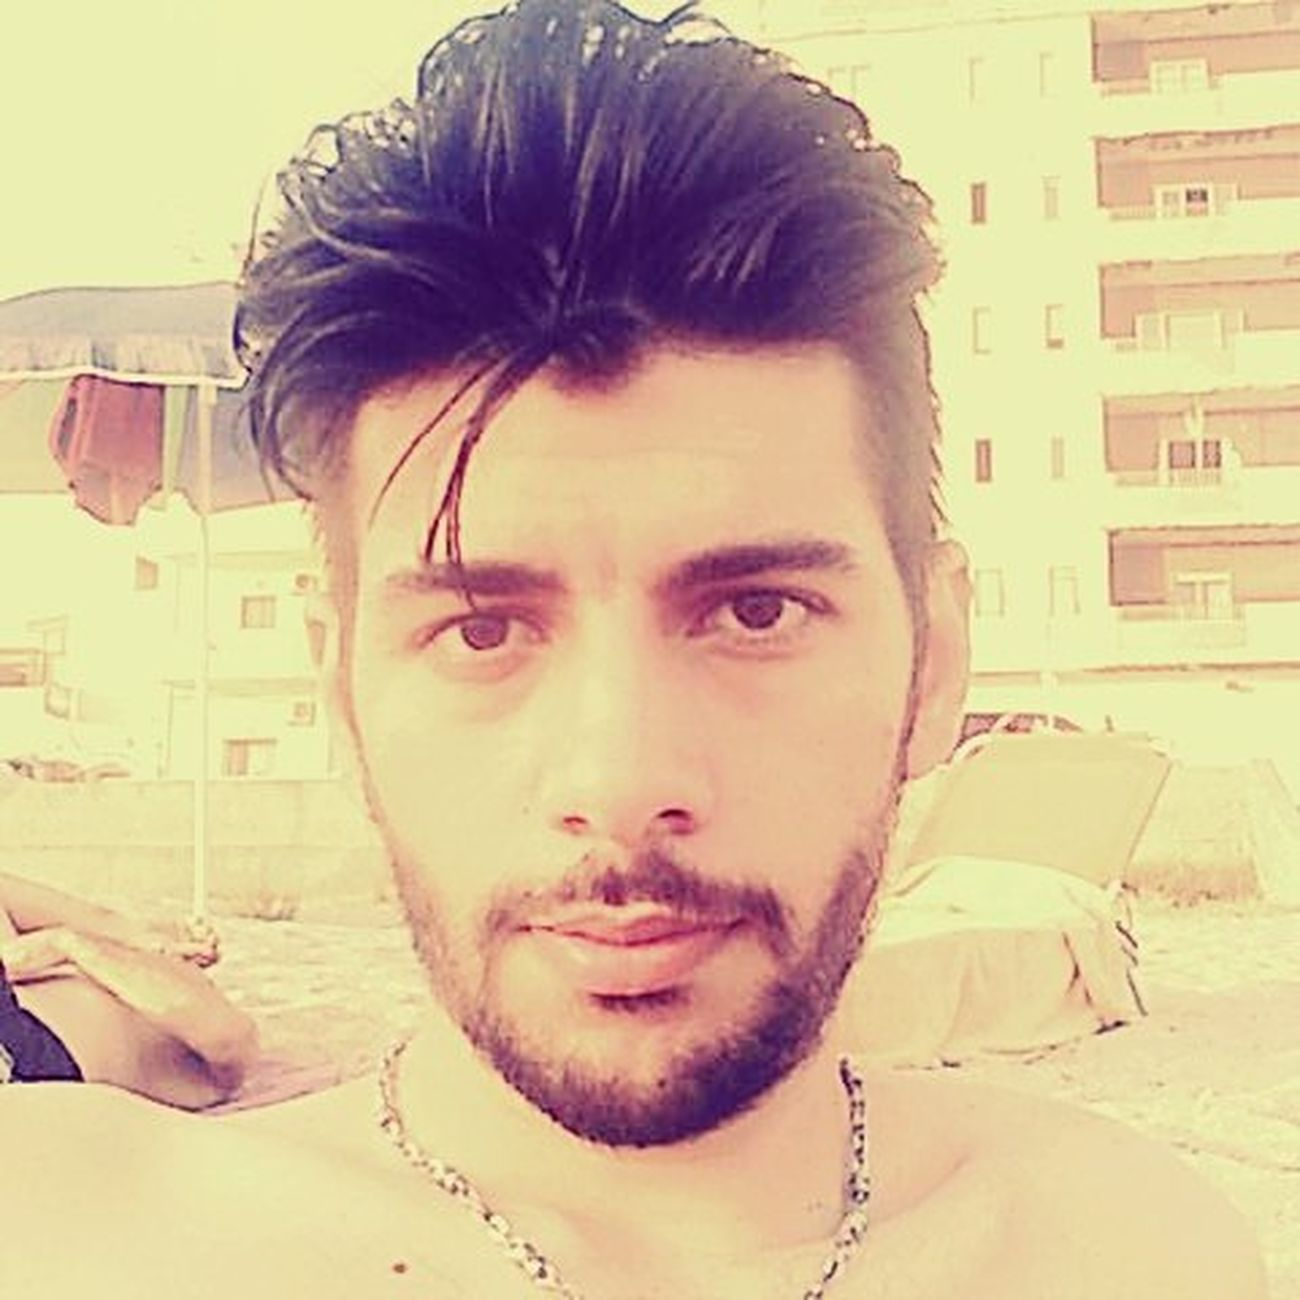 Beach Relax Estate Italy Sicily Summer Spadafora Sun Eyes Instalike Instagood Picoftheday Sea Hair Beard Messina Male Boy